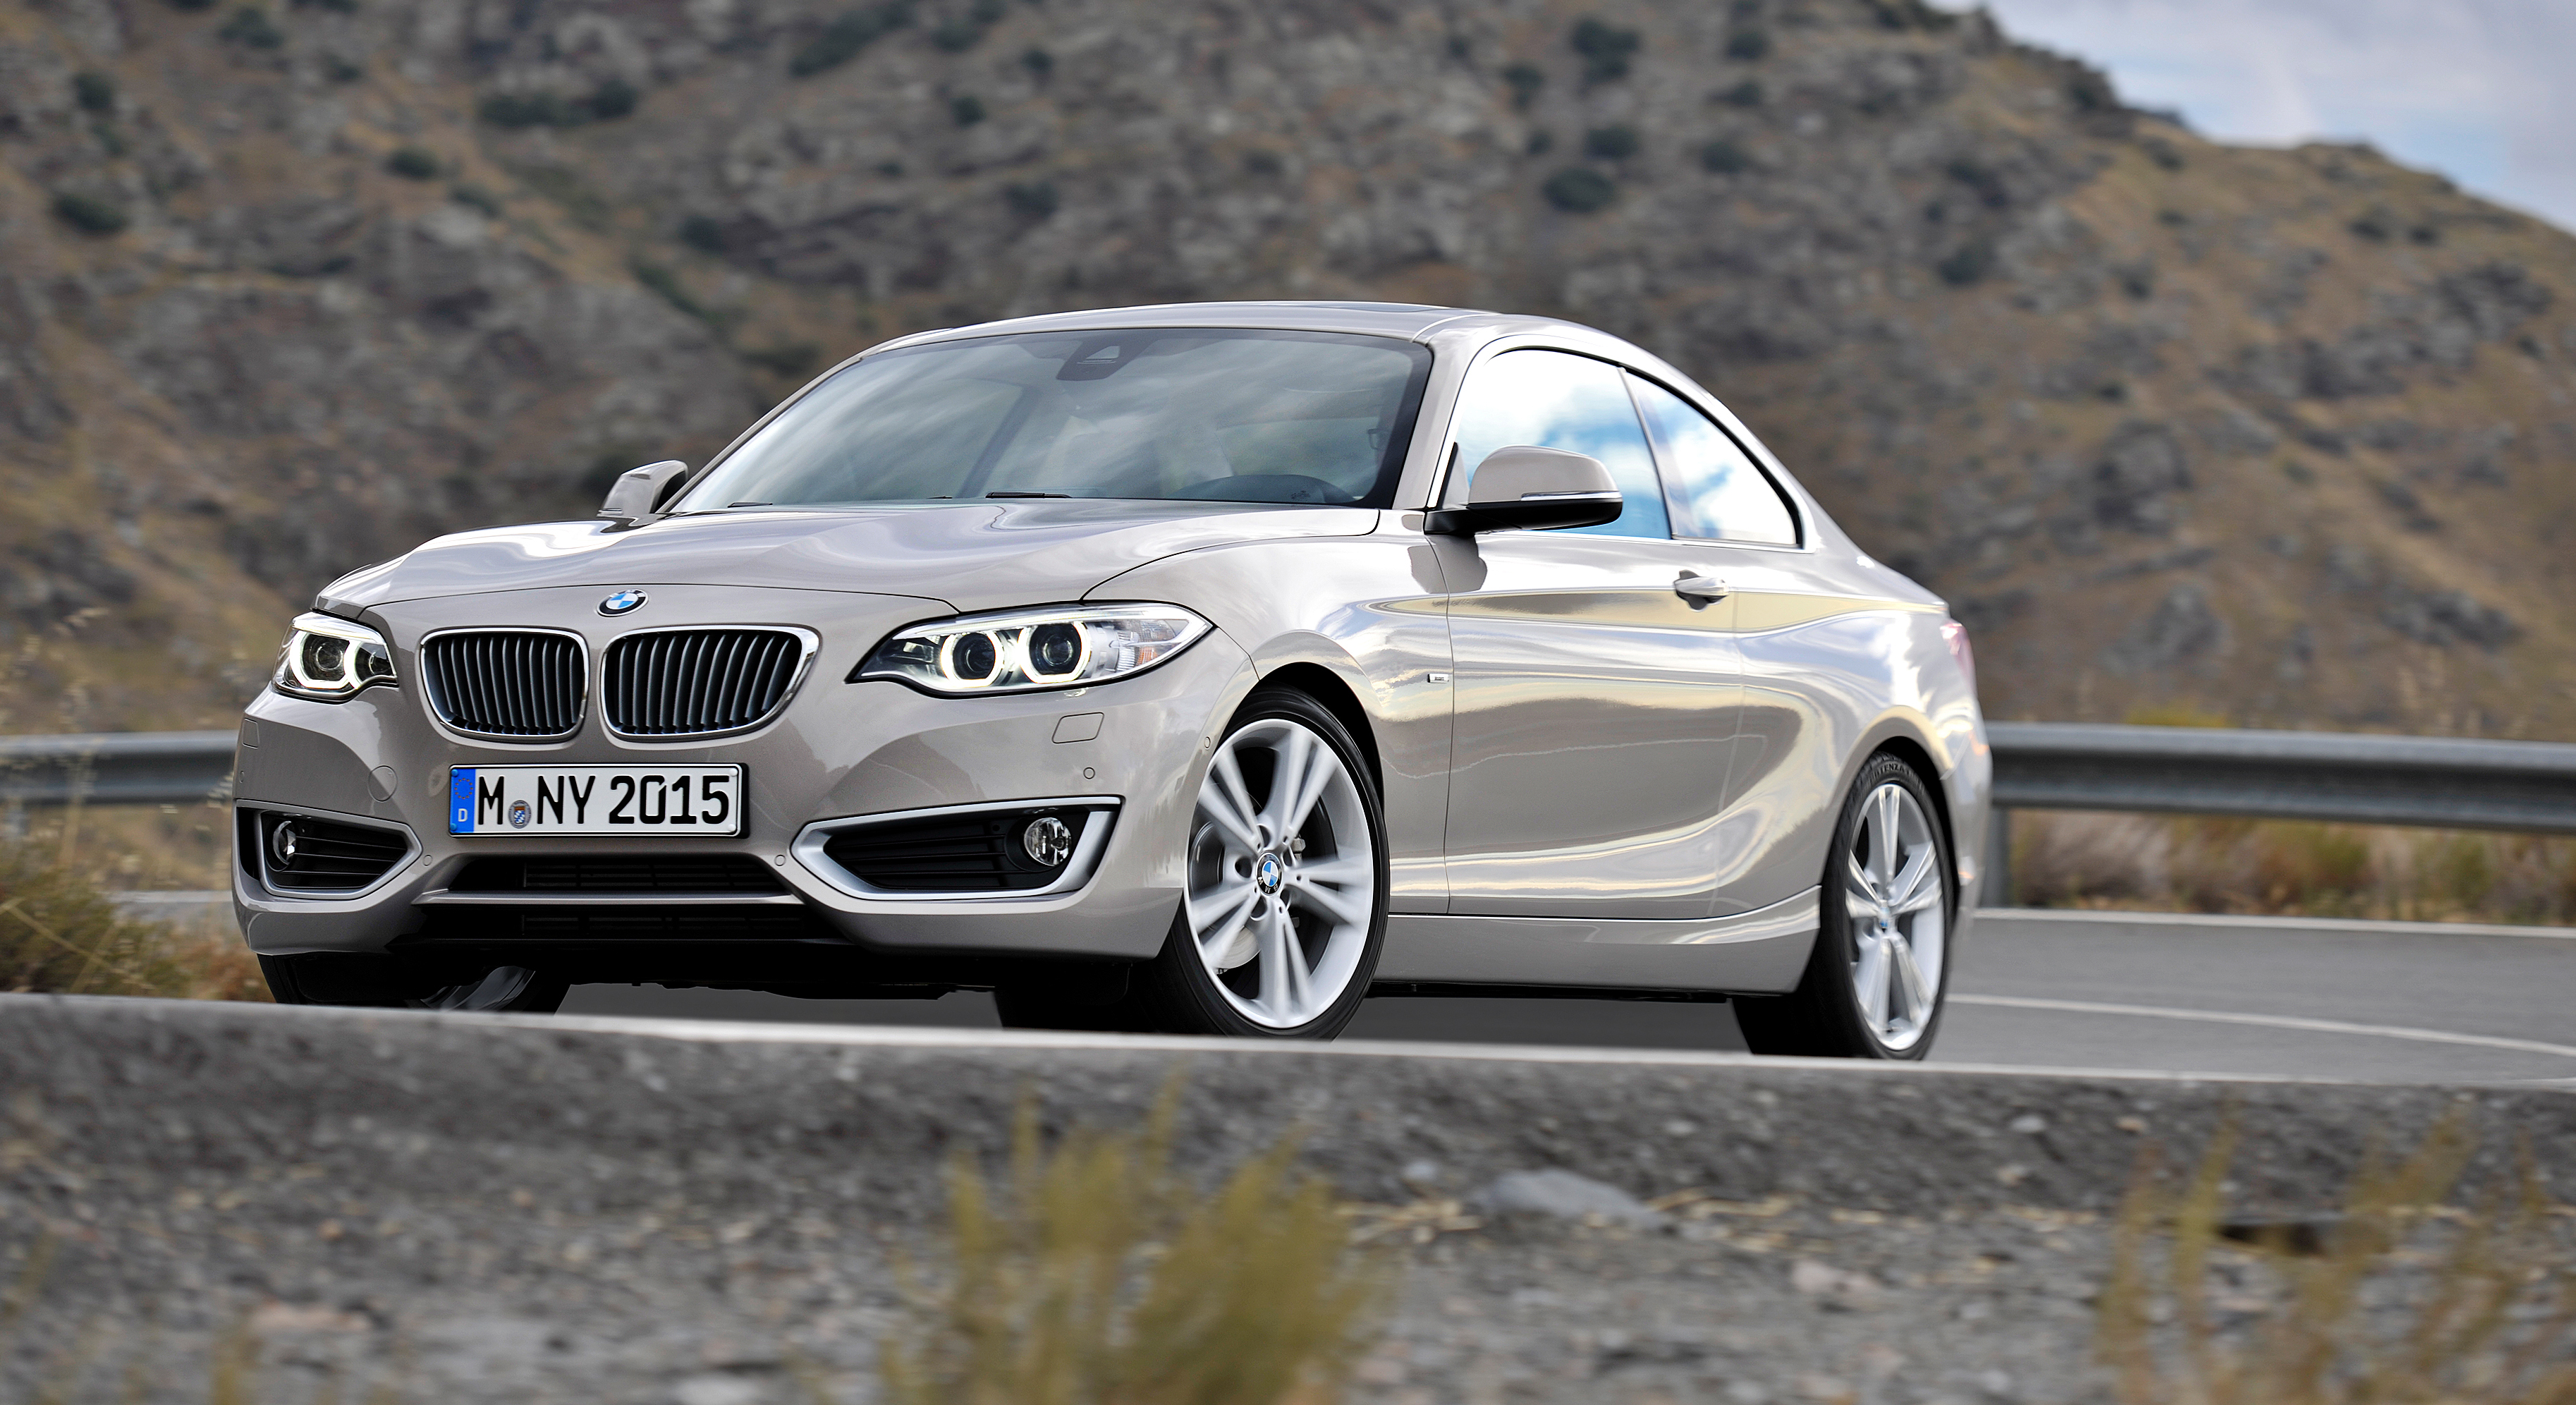 New Bmw 2 Series Coupe And M235i Unveiled In Full Image 206481